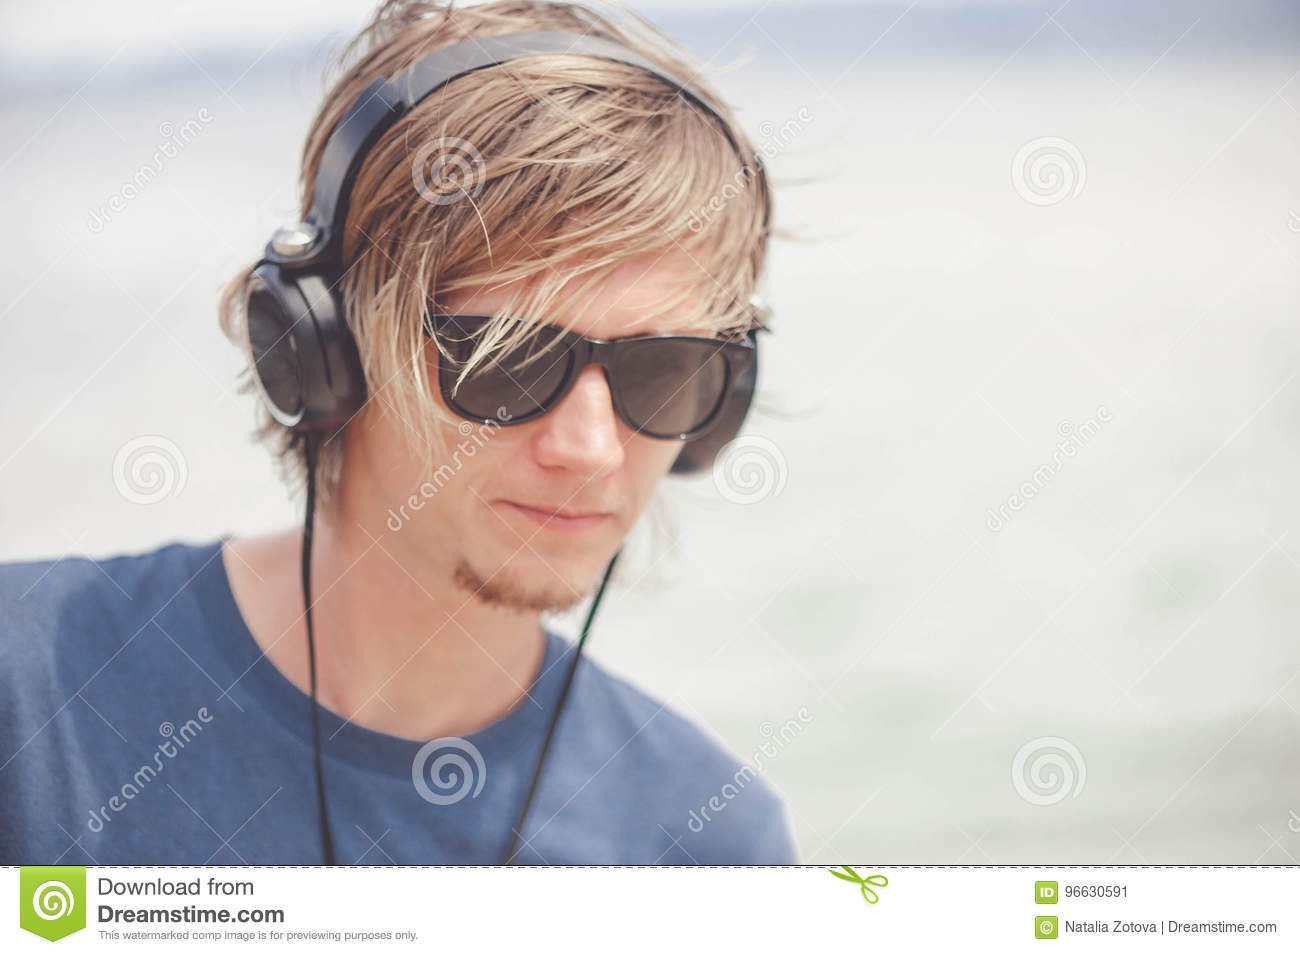 fff07bebe6c8 Handsome elegant man working with laptop and headphones watching a video  lecture on line at the beach